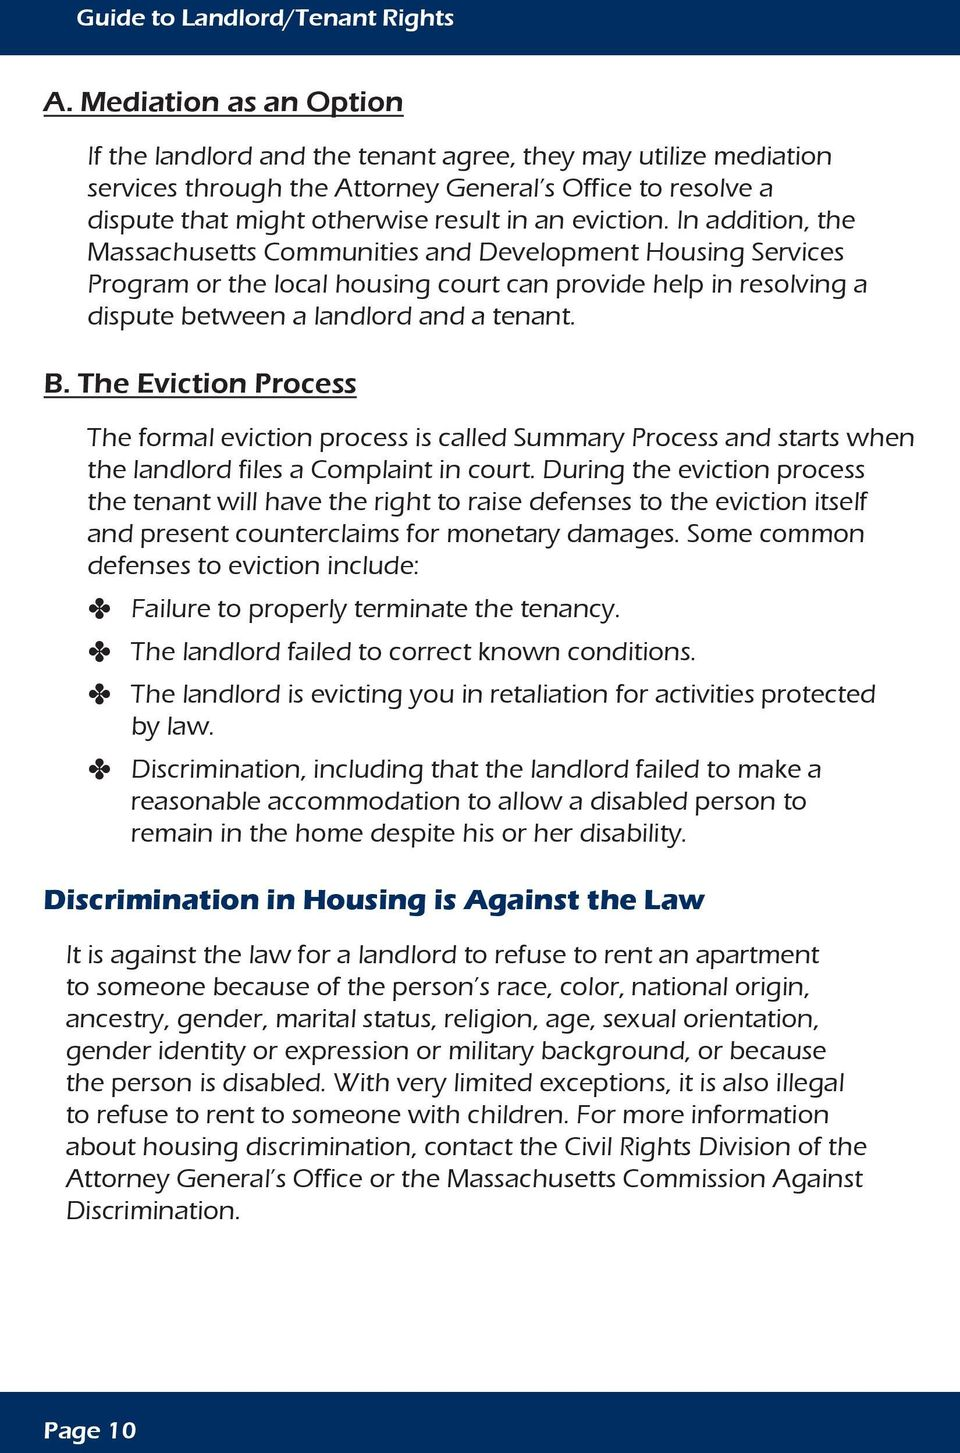 In addition, the Massachusetts Communities and Development Housing Services Program or the local housing court can provide help in resolving a dispute between a landlord and a tenant. B.